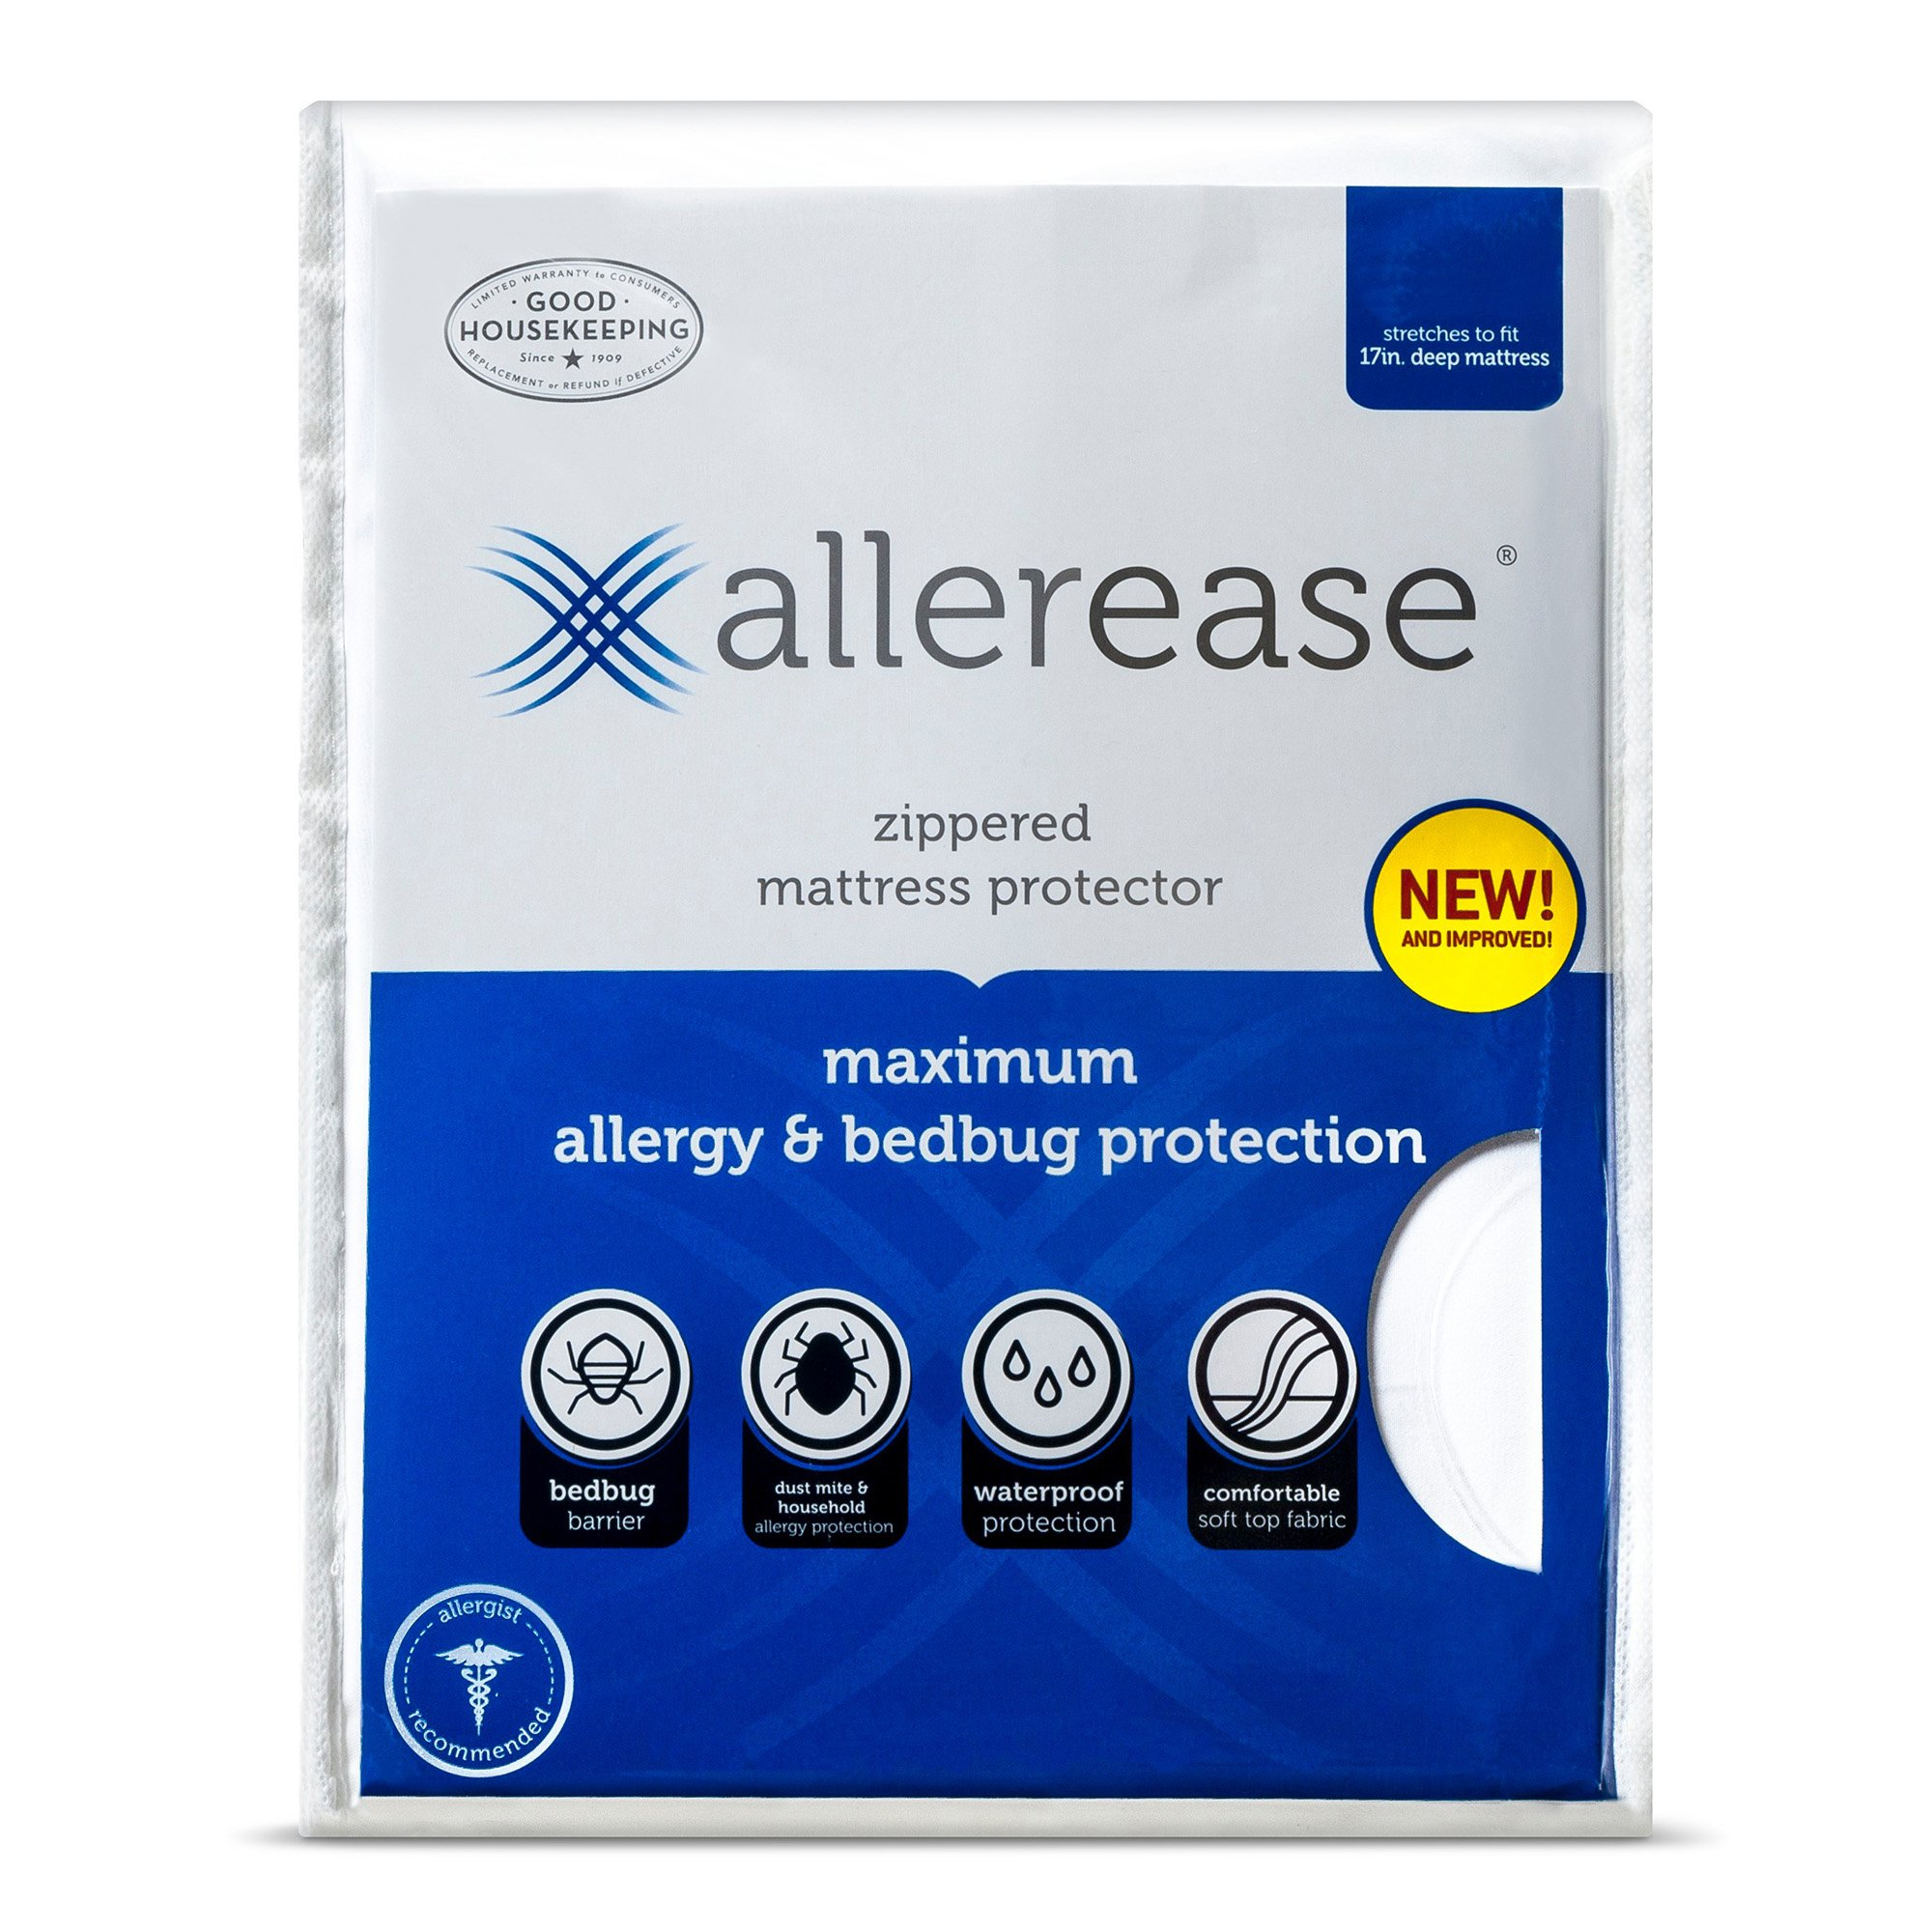 AllerEase Maximum Allergy and Bed Bug Waterproof Zippered Mattress Protector - Allergist Recommended to Prevent Collection of Dust Mites and Other Allergens, Vinyl Free & Hypoallergenic, King Sized